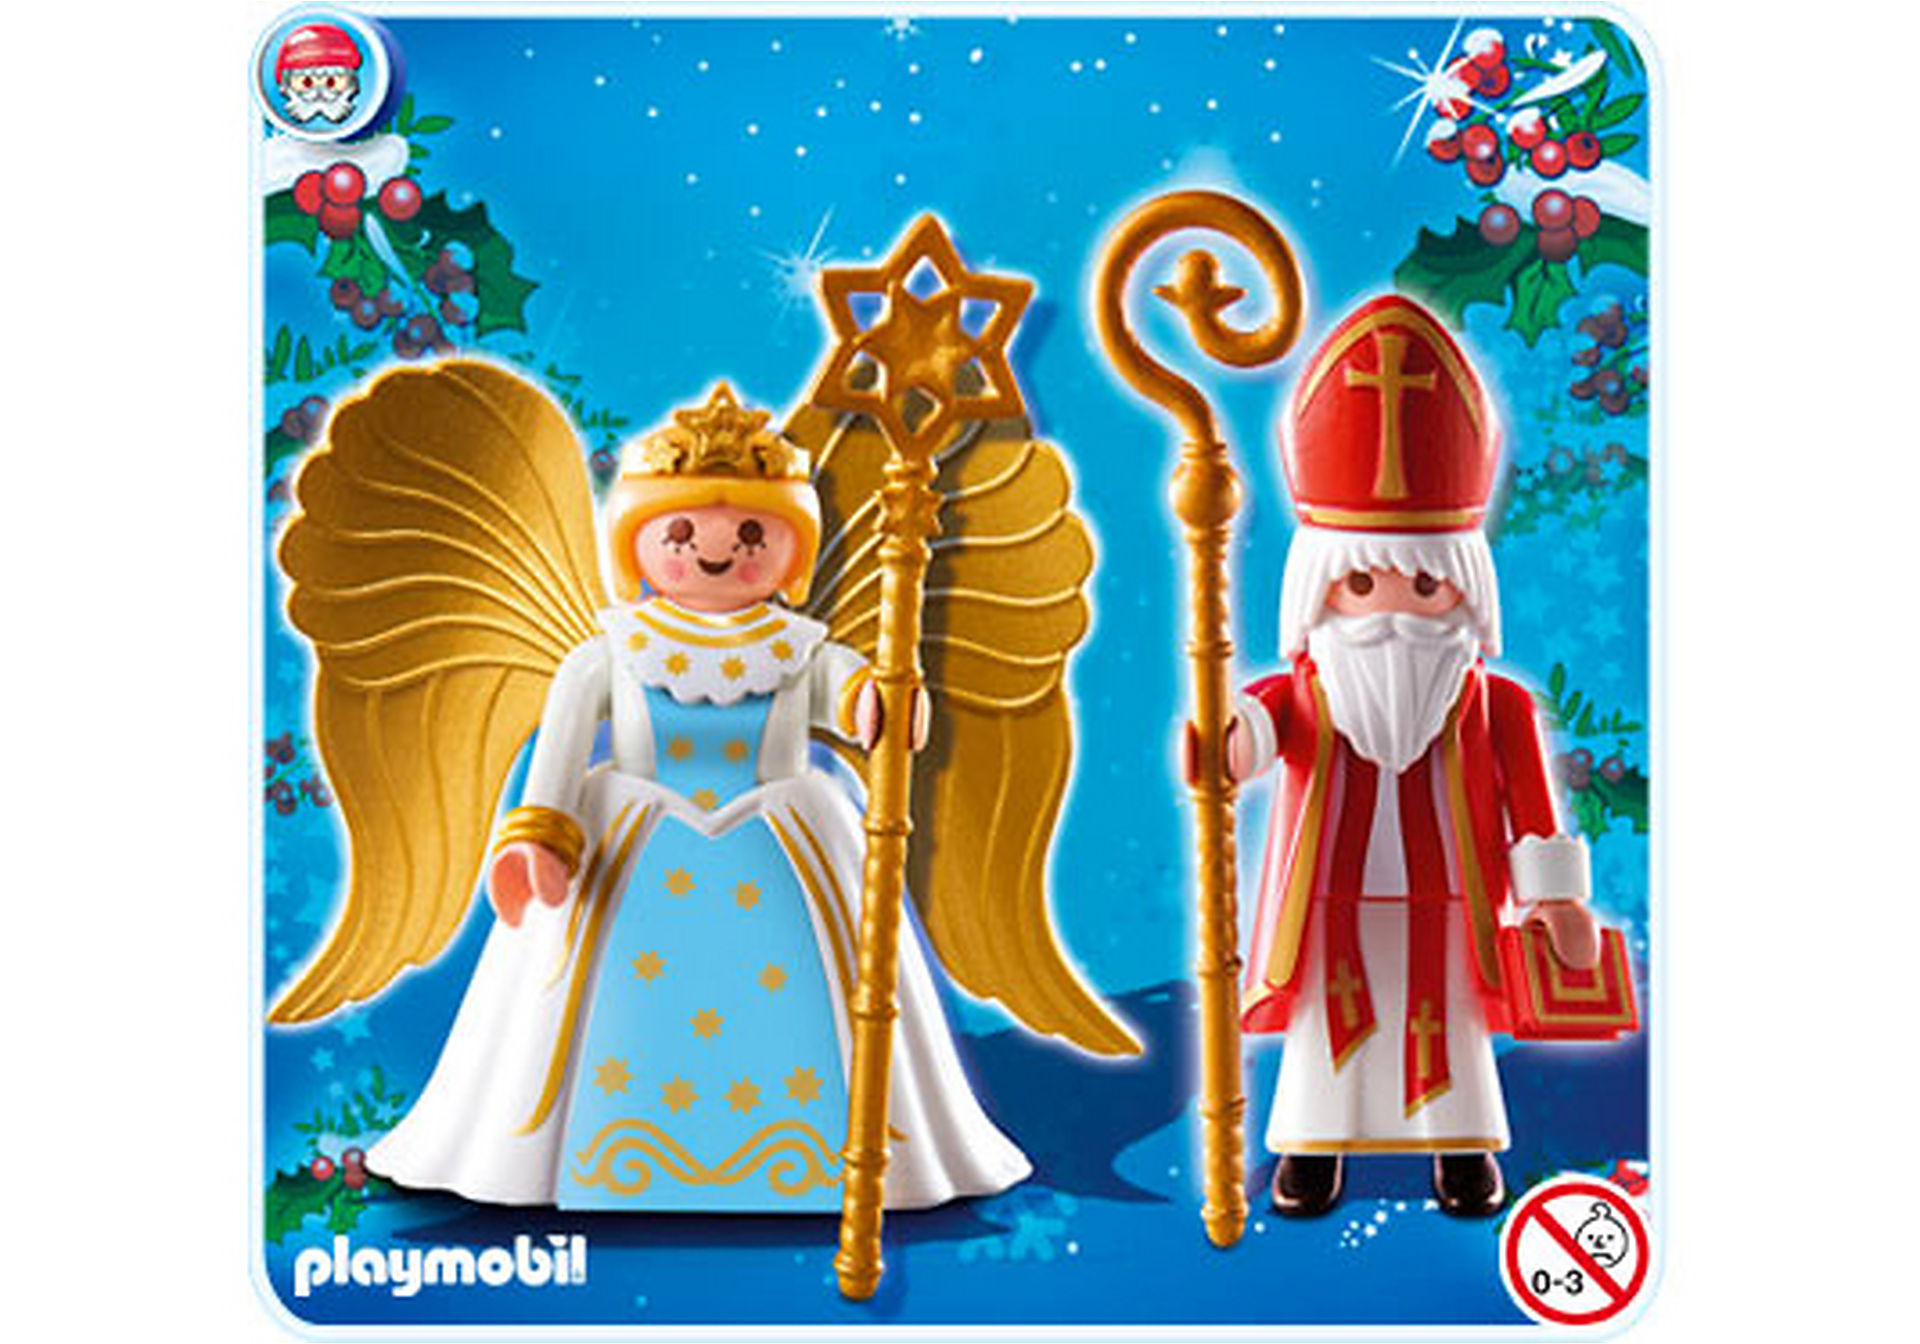 http://media.playmobil.com/i/playmobil/4887-A_product_detail/St. Nikolaus und Christkind